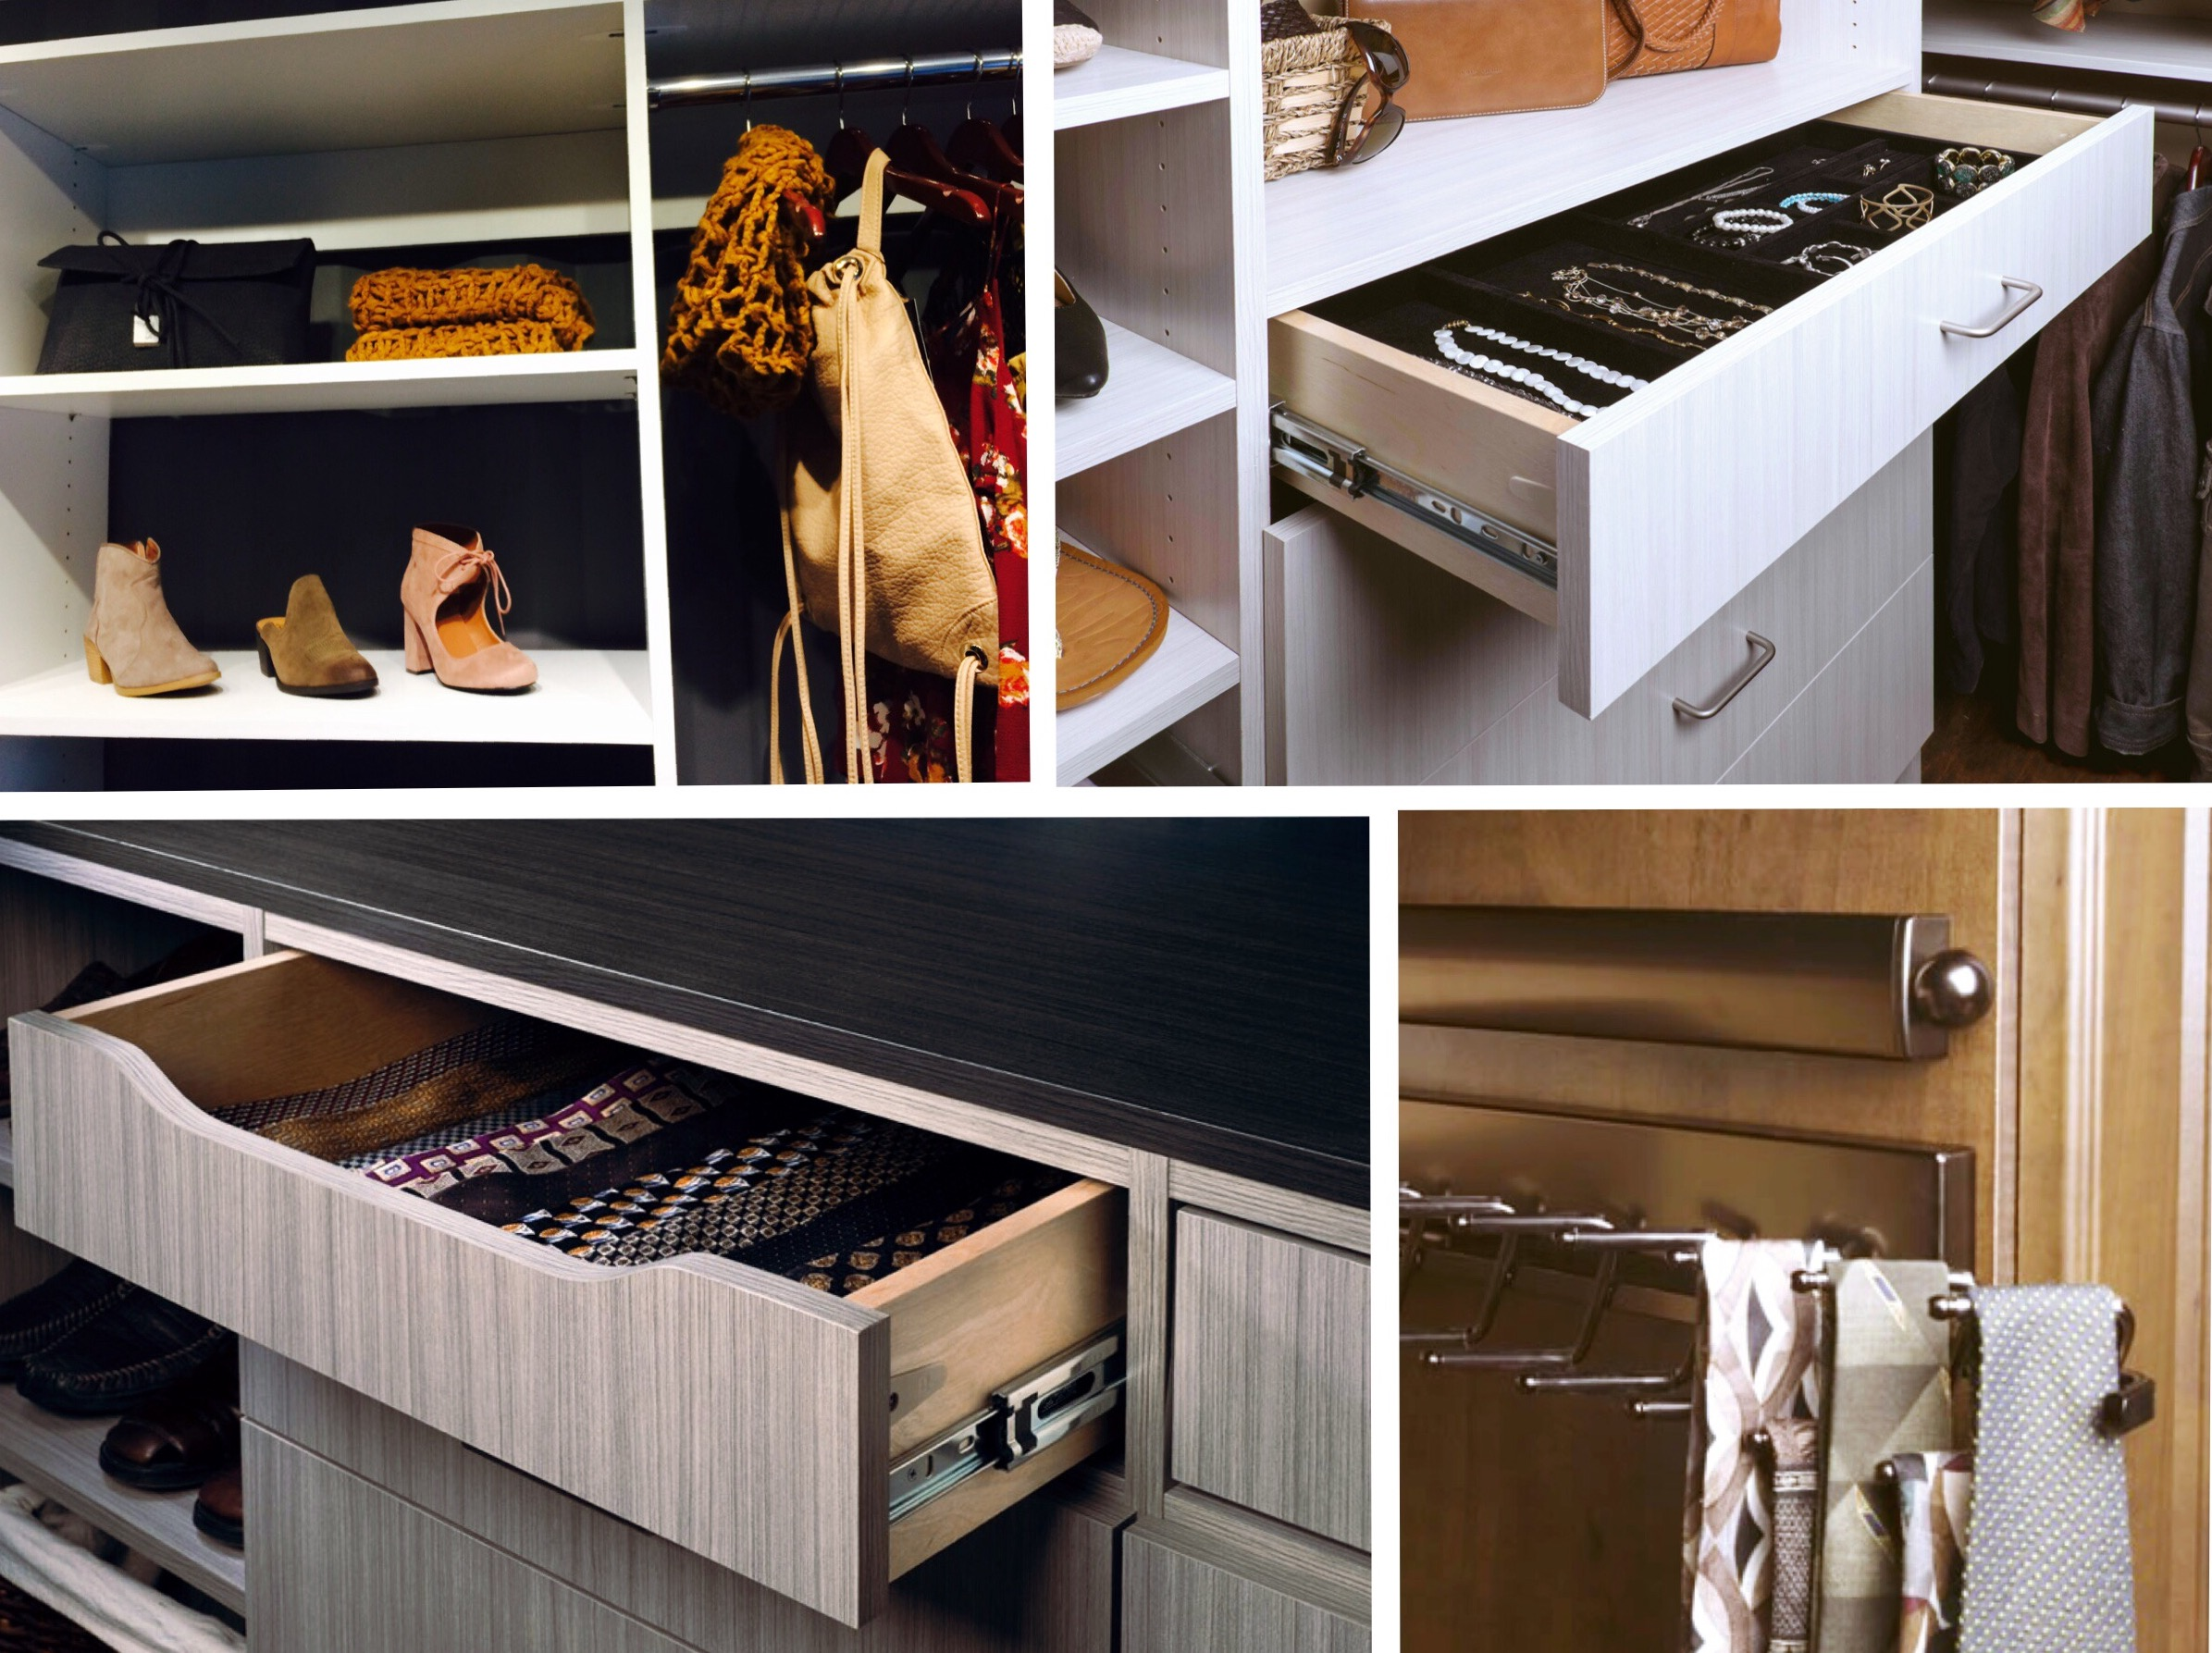 Custom closets by Closets of Tulsa create a system for everything you need to store.  Call Closets of Tulsa  today for your FREE consultation and 3-D closet design:  918.609.0214